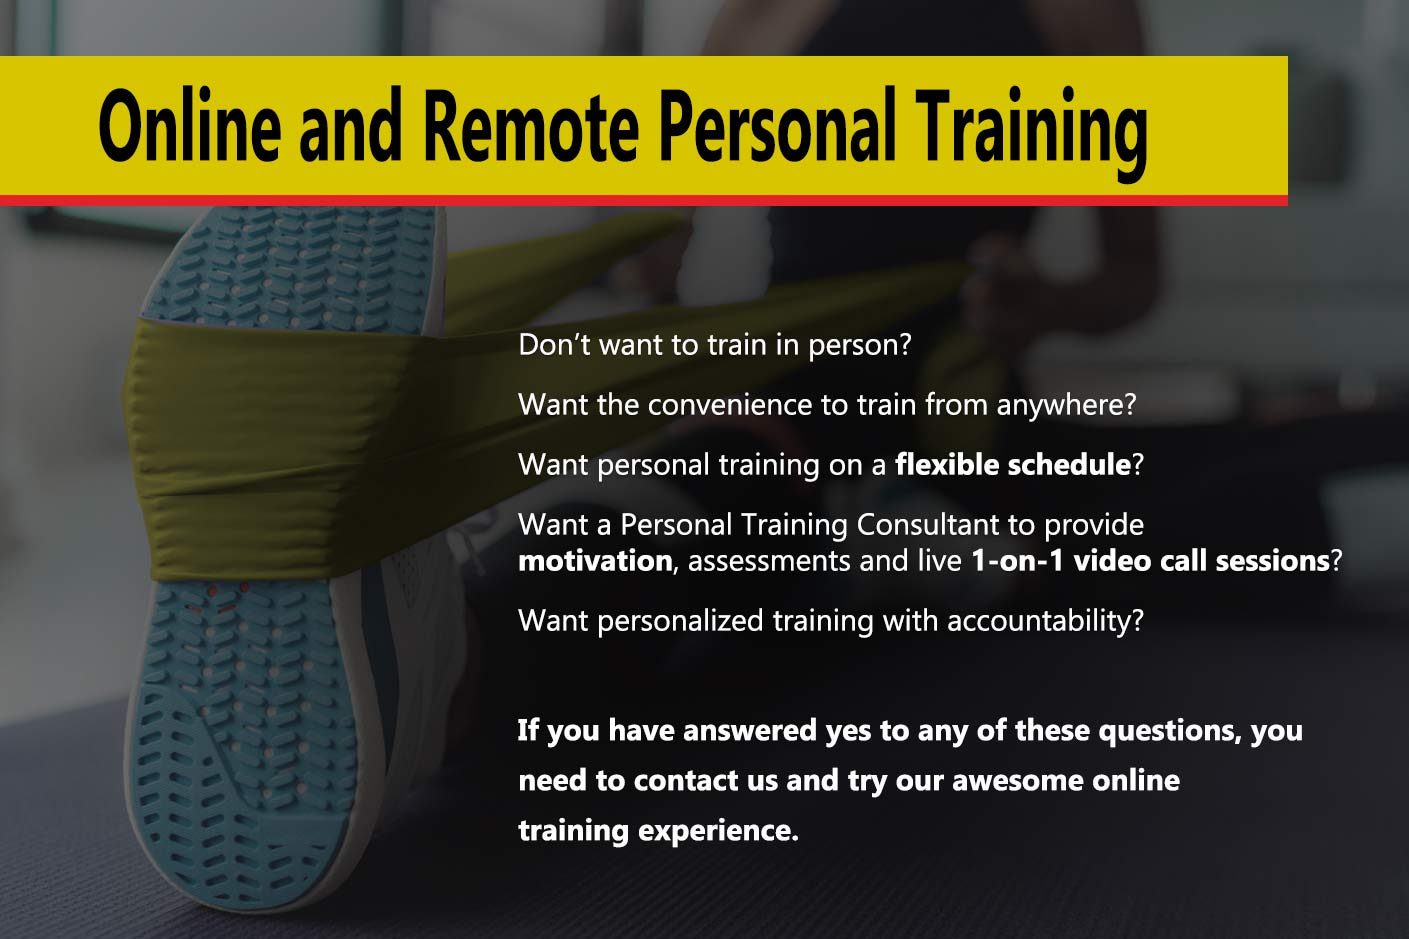 Online and Remote Personal Training